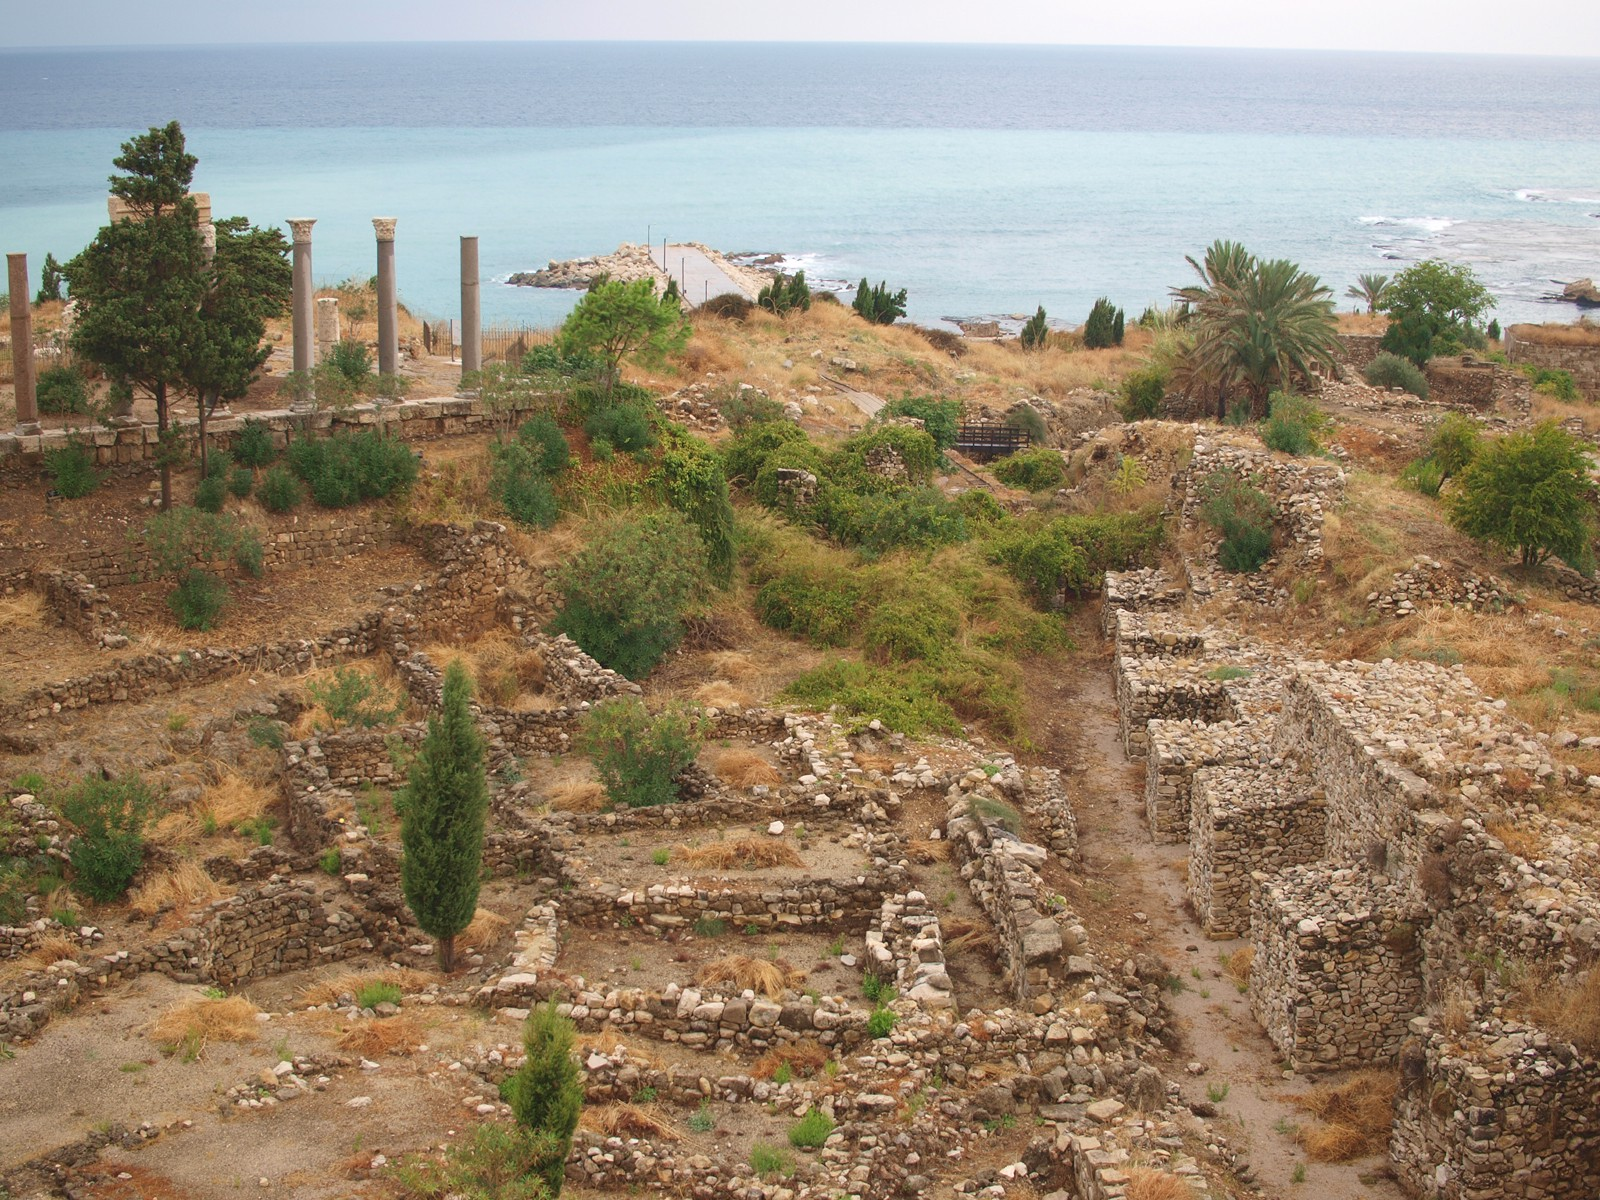 Phoenician port of Byblos, in present-day Lebanon. We may speak English the way we do because Semitic-speaking Phoenicians learned Proto-Indo-European, which they then passed on to their kids. - PHOTO BY BARRY EVANS